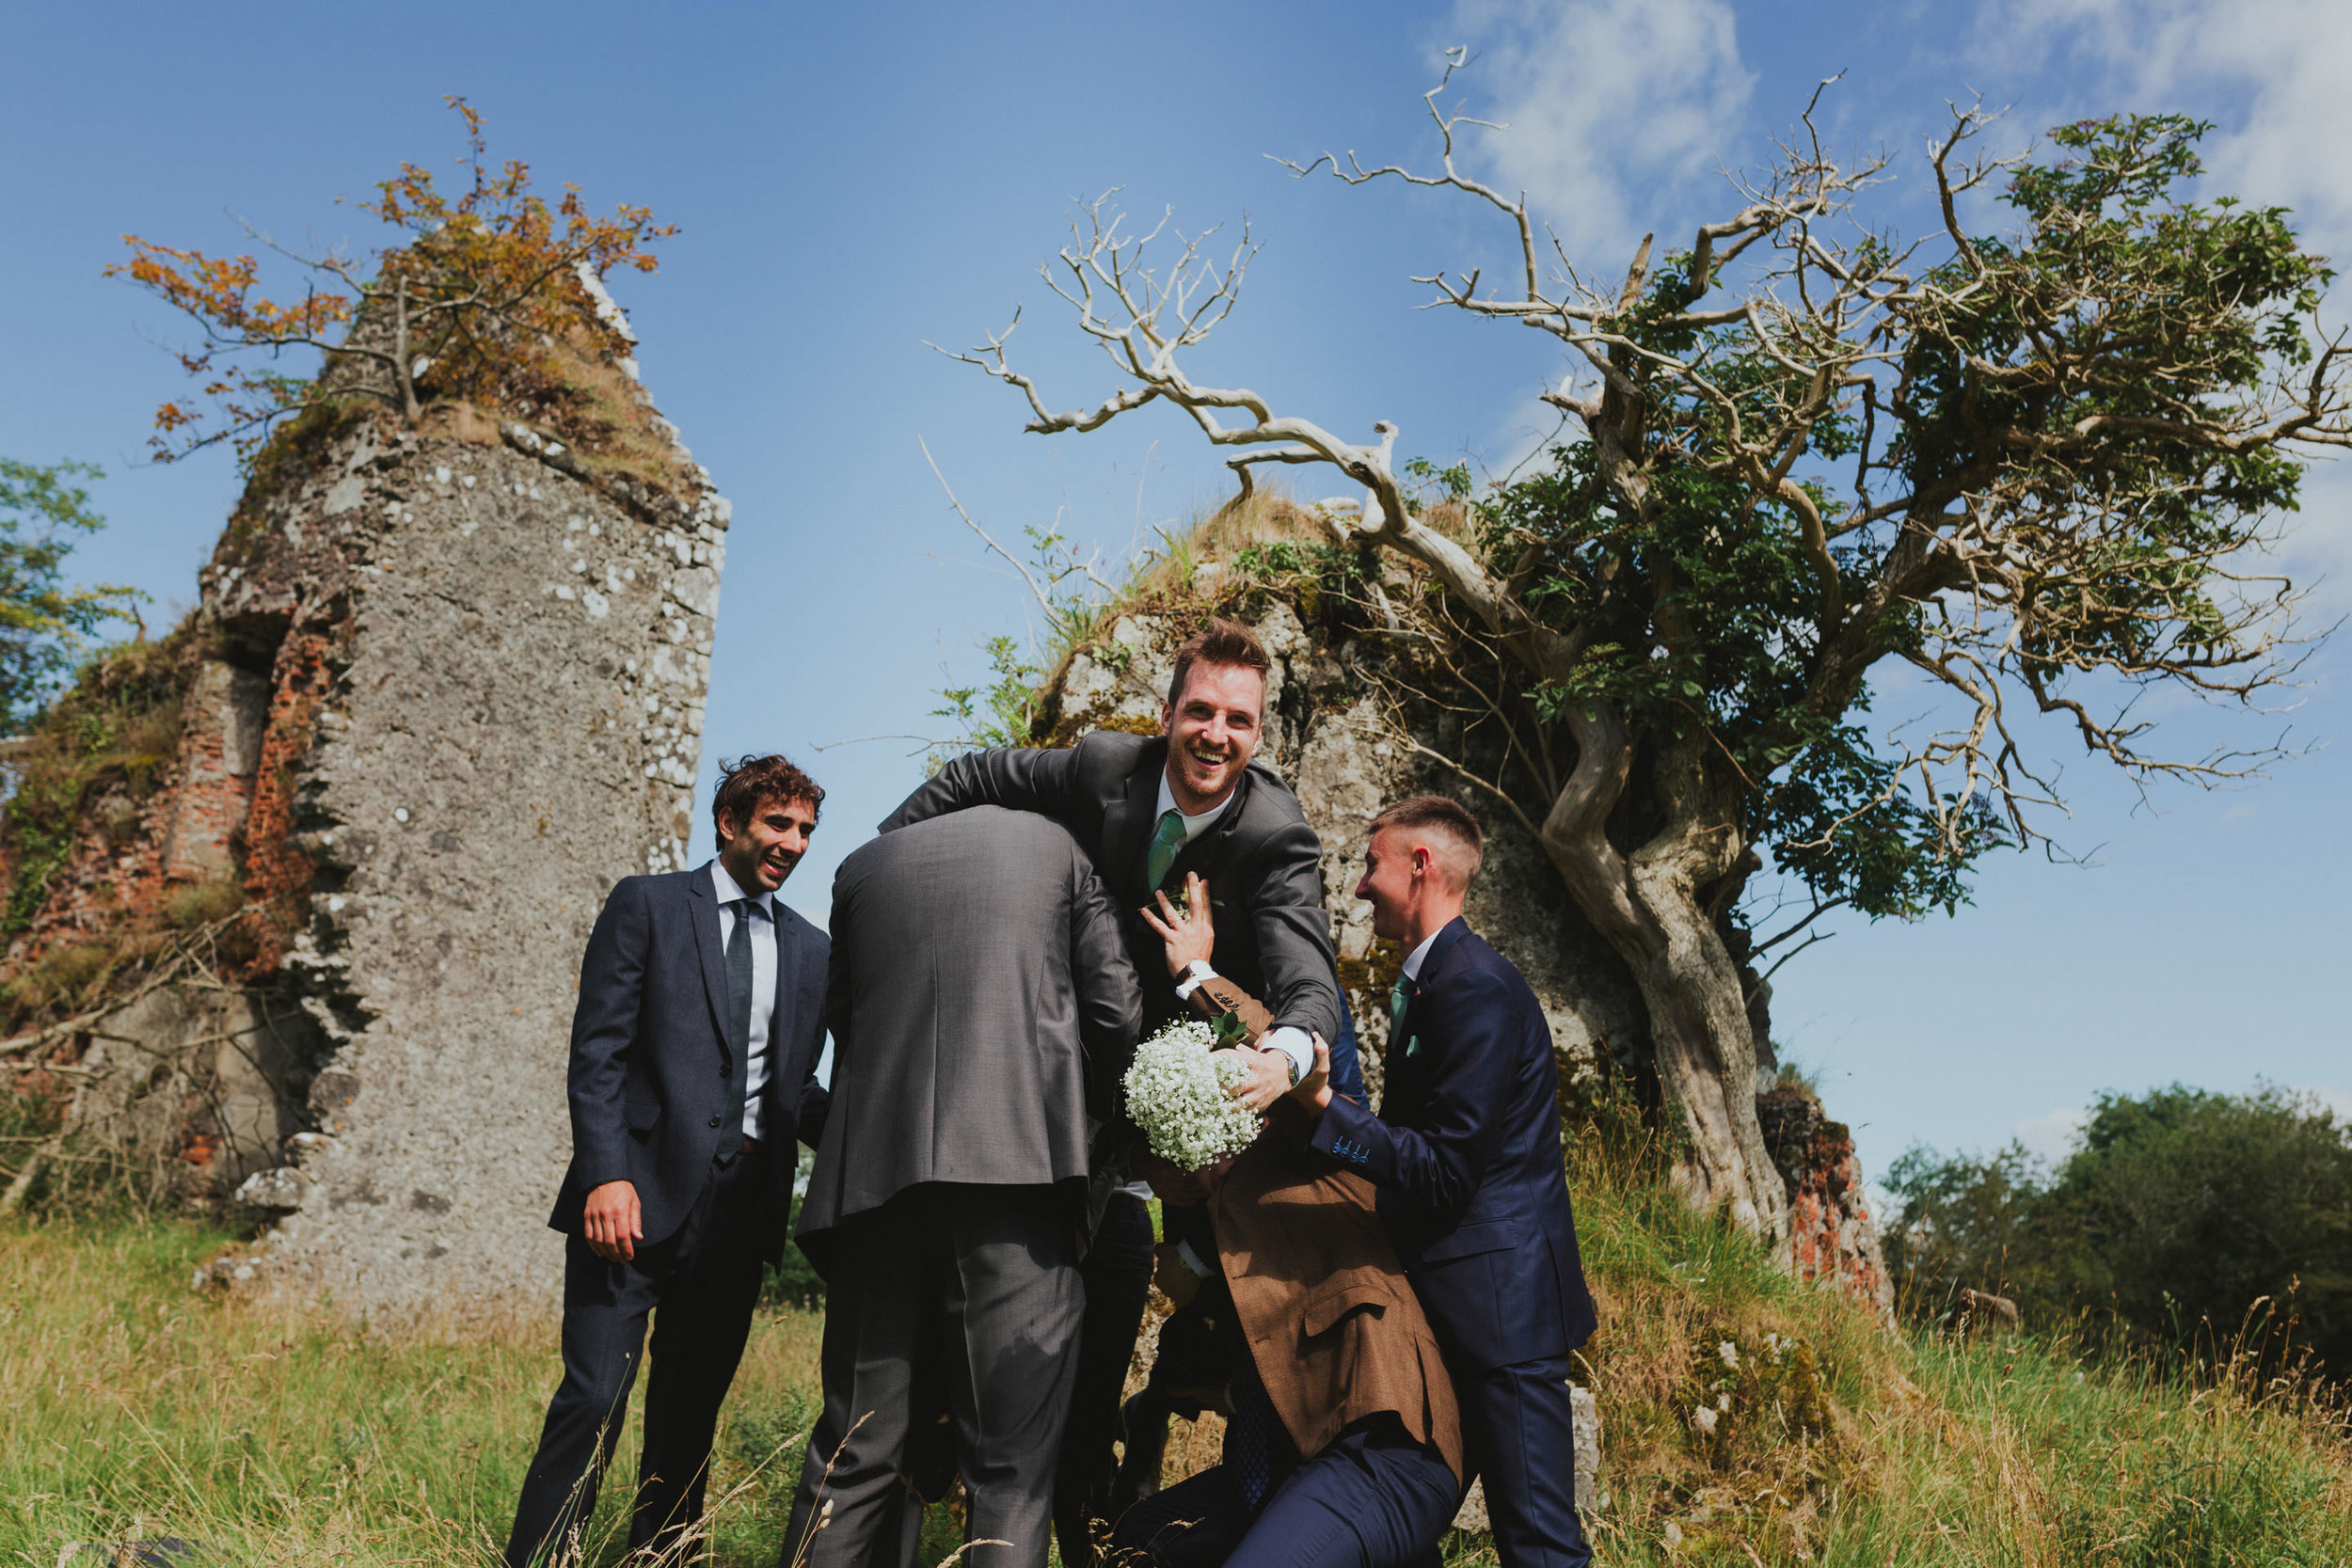 a+s_temple_house_sligo_wedding_livia_figueiredo_778.jpg